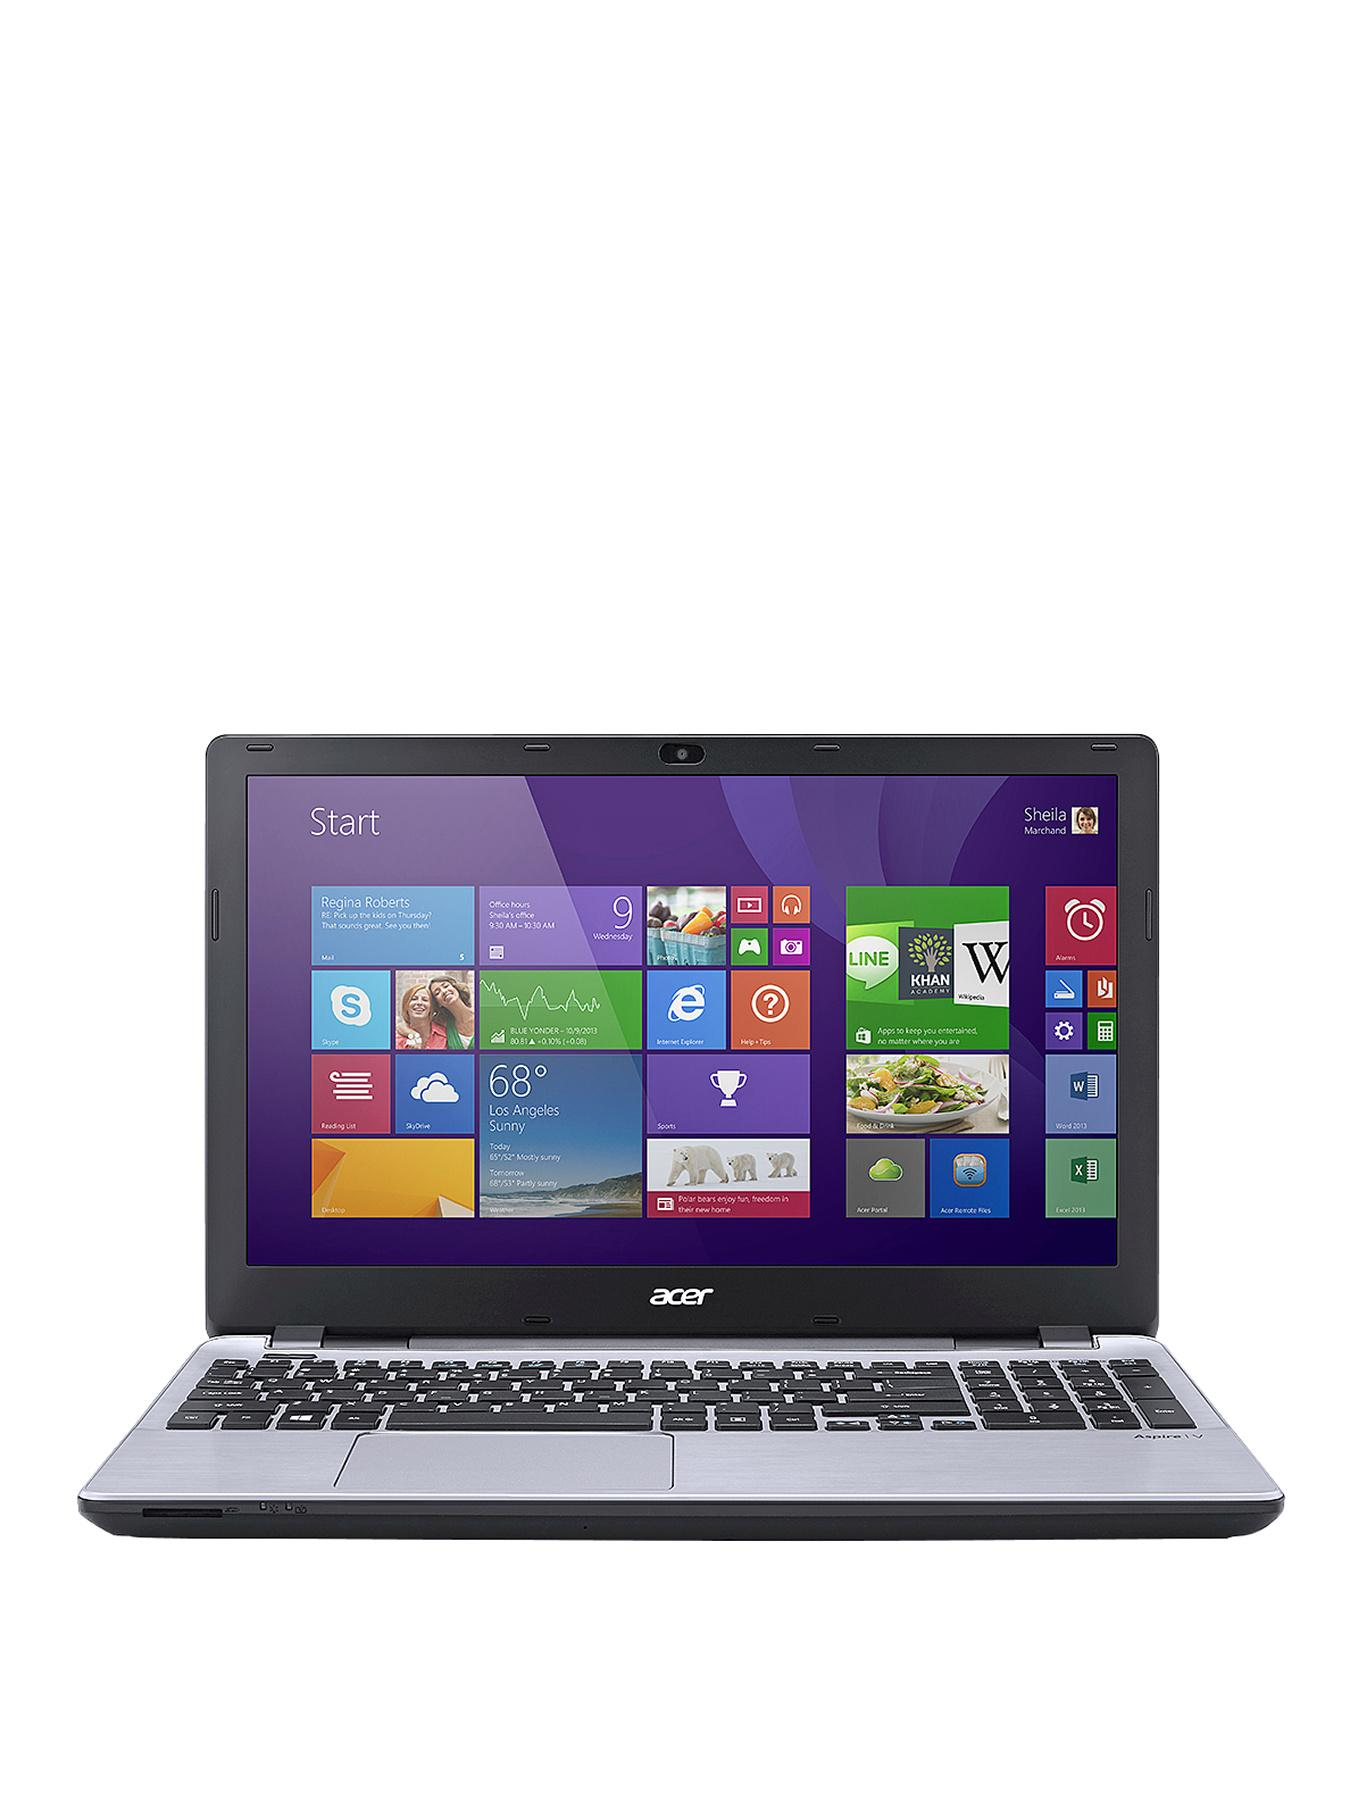 Acer V3-572 Intel Core i5 Processor, 6Gb RAM, 1Tb Hard Drive, Wi-Fi, 15.6 inch Laptop - Silver